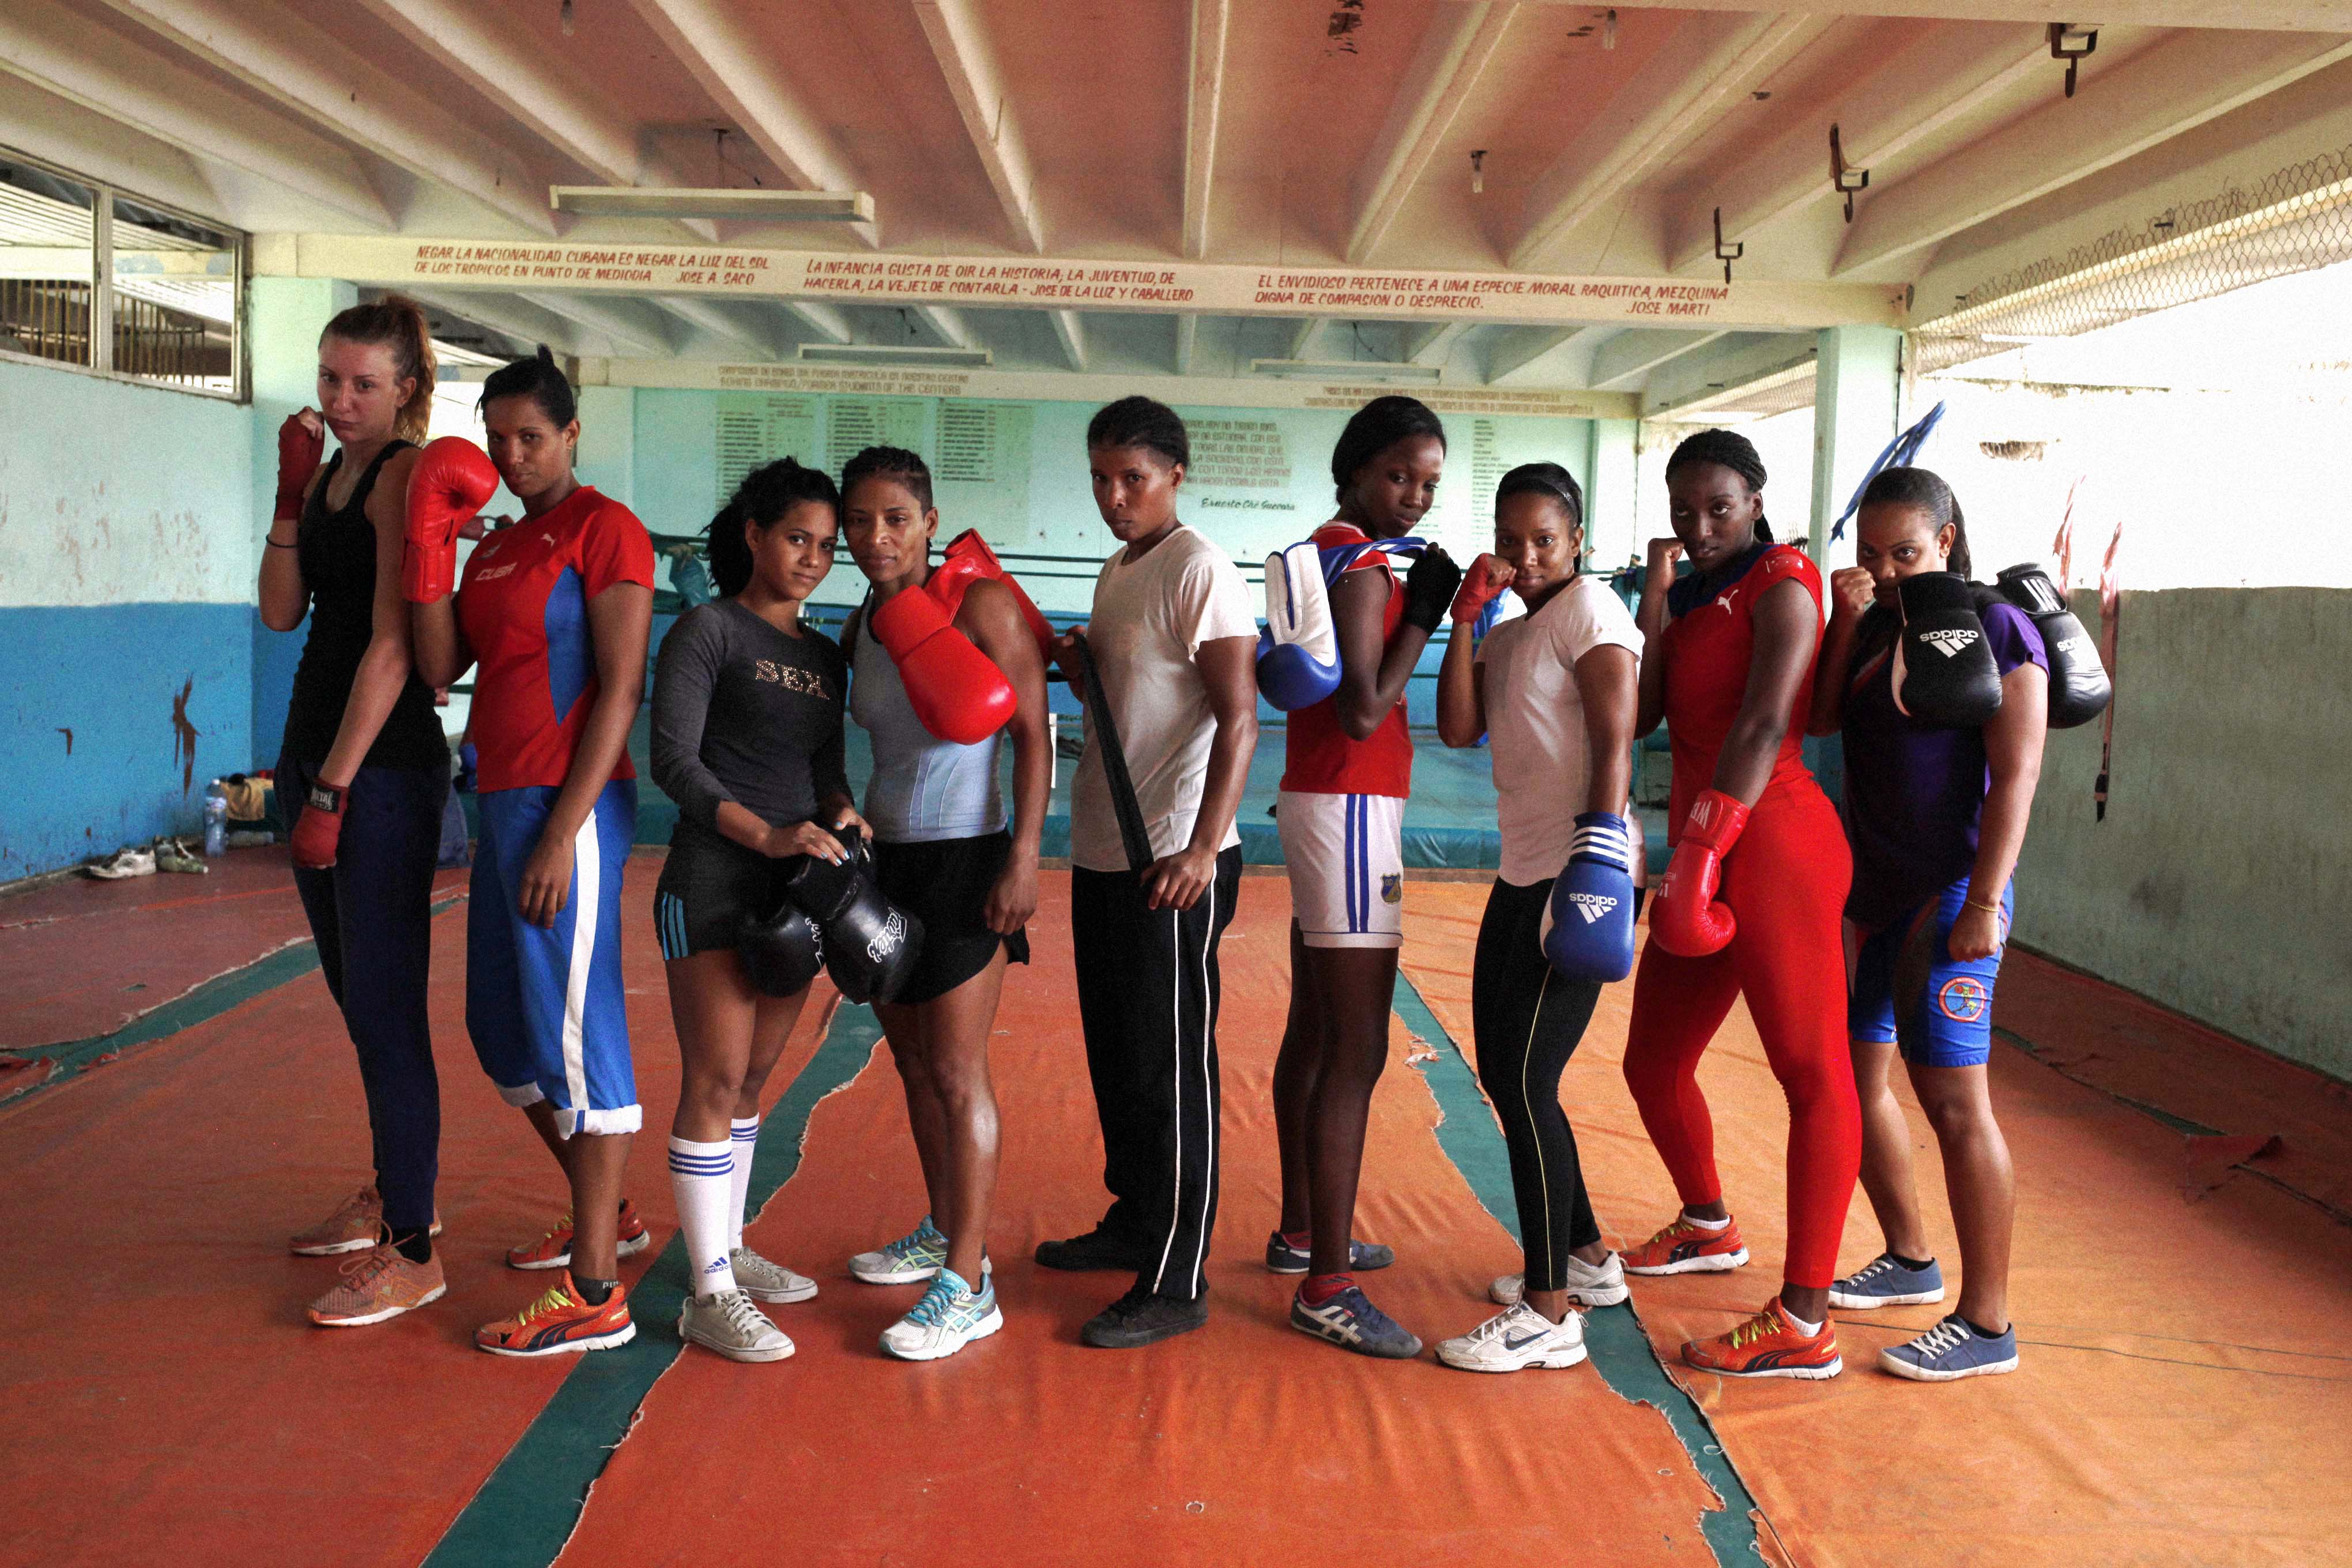 REVIEW: In This Dazzling Doc, Namibia Flores Rodriguez Fights Against a Boxing Ban for Women in Cuba